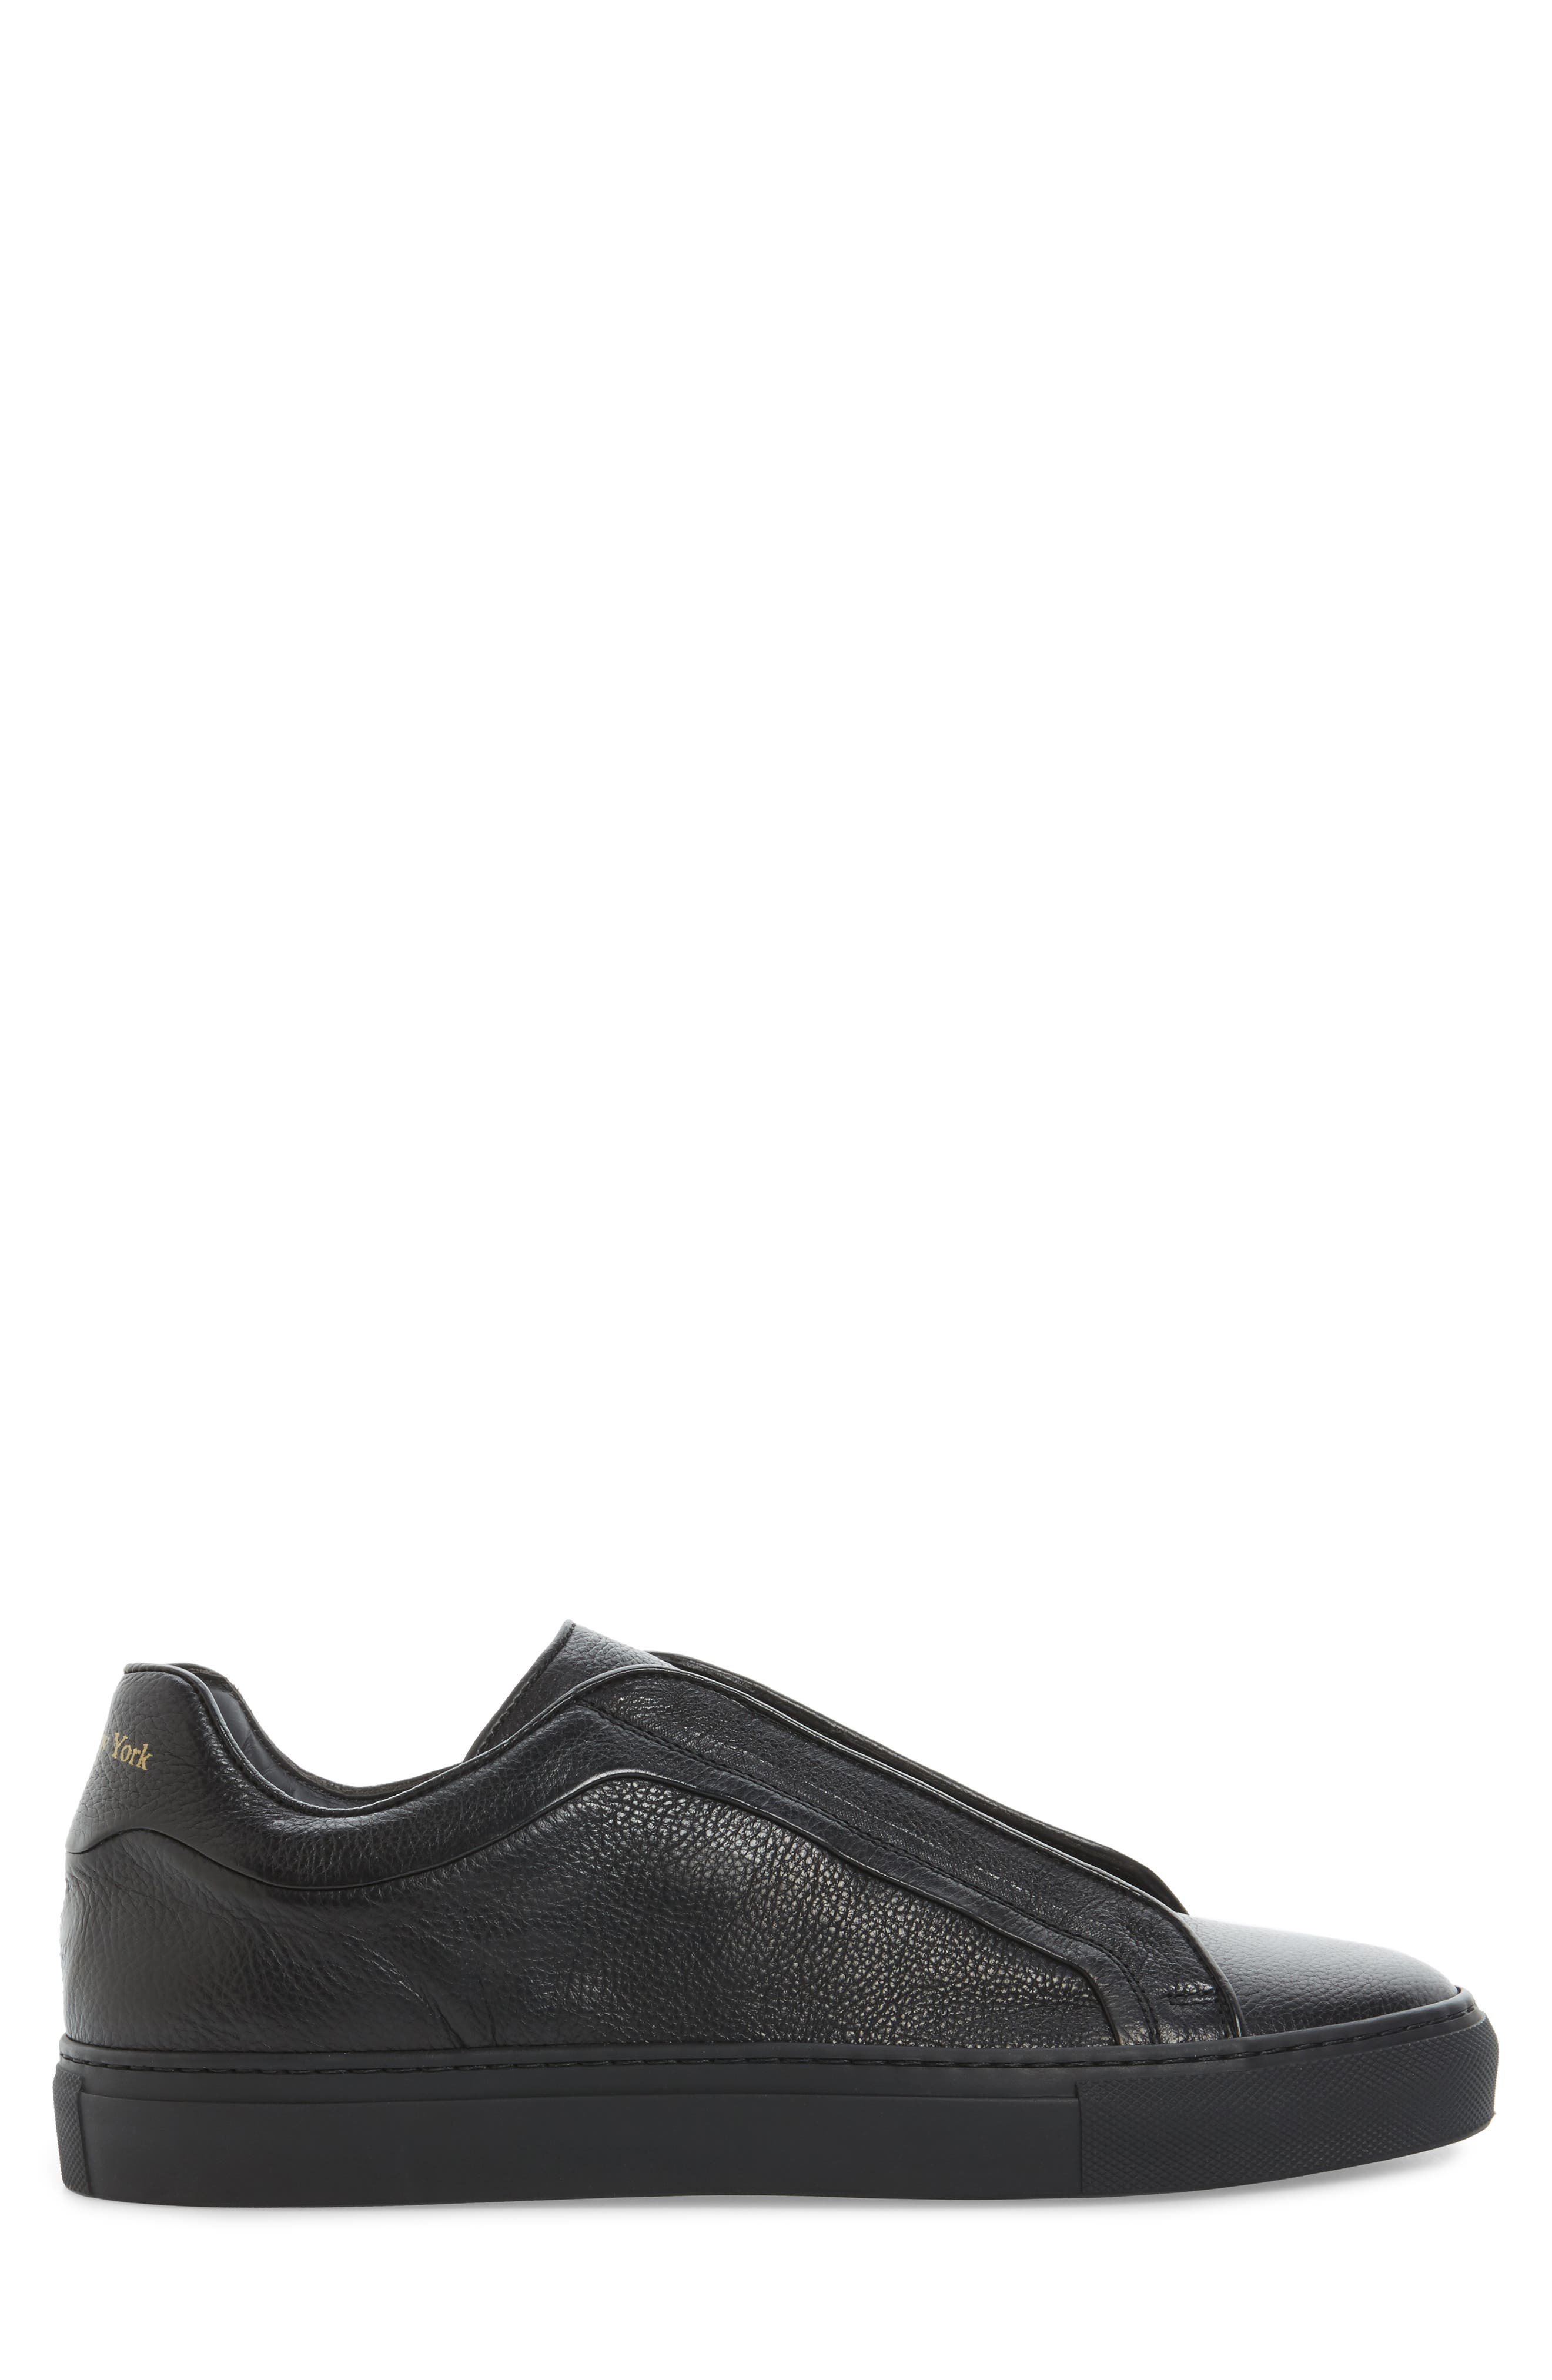 Cliff Sneaker,                             Alternate thumbnail 3, color,                             Black Leather